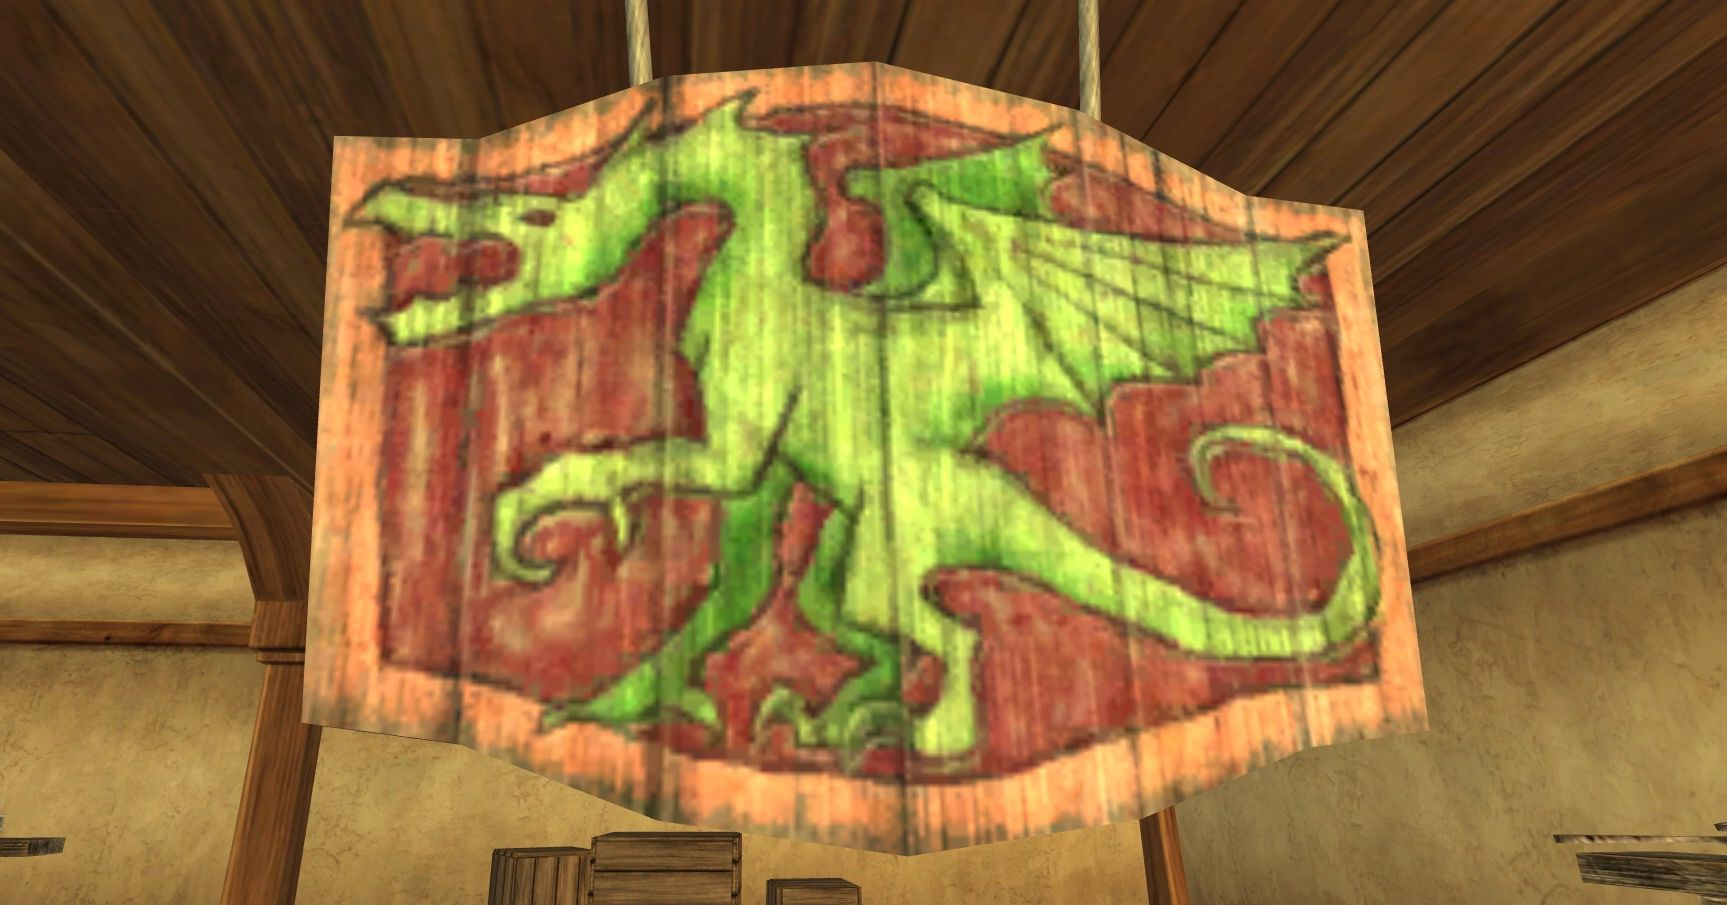 https://www.linawillow.org/home/wp-content/uploads/2012/04/green-dragon-anniversary.jpg